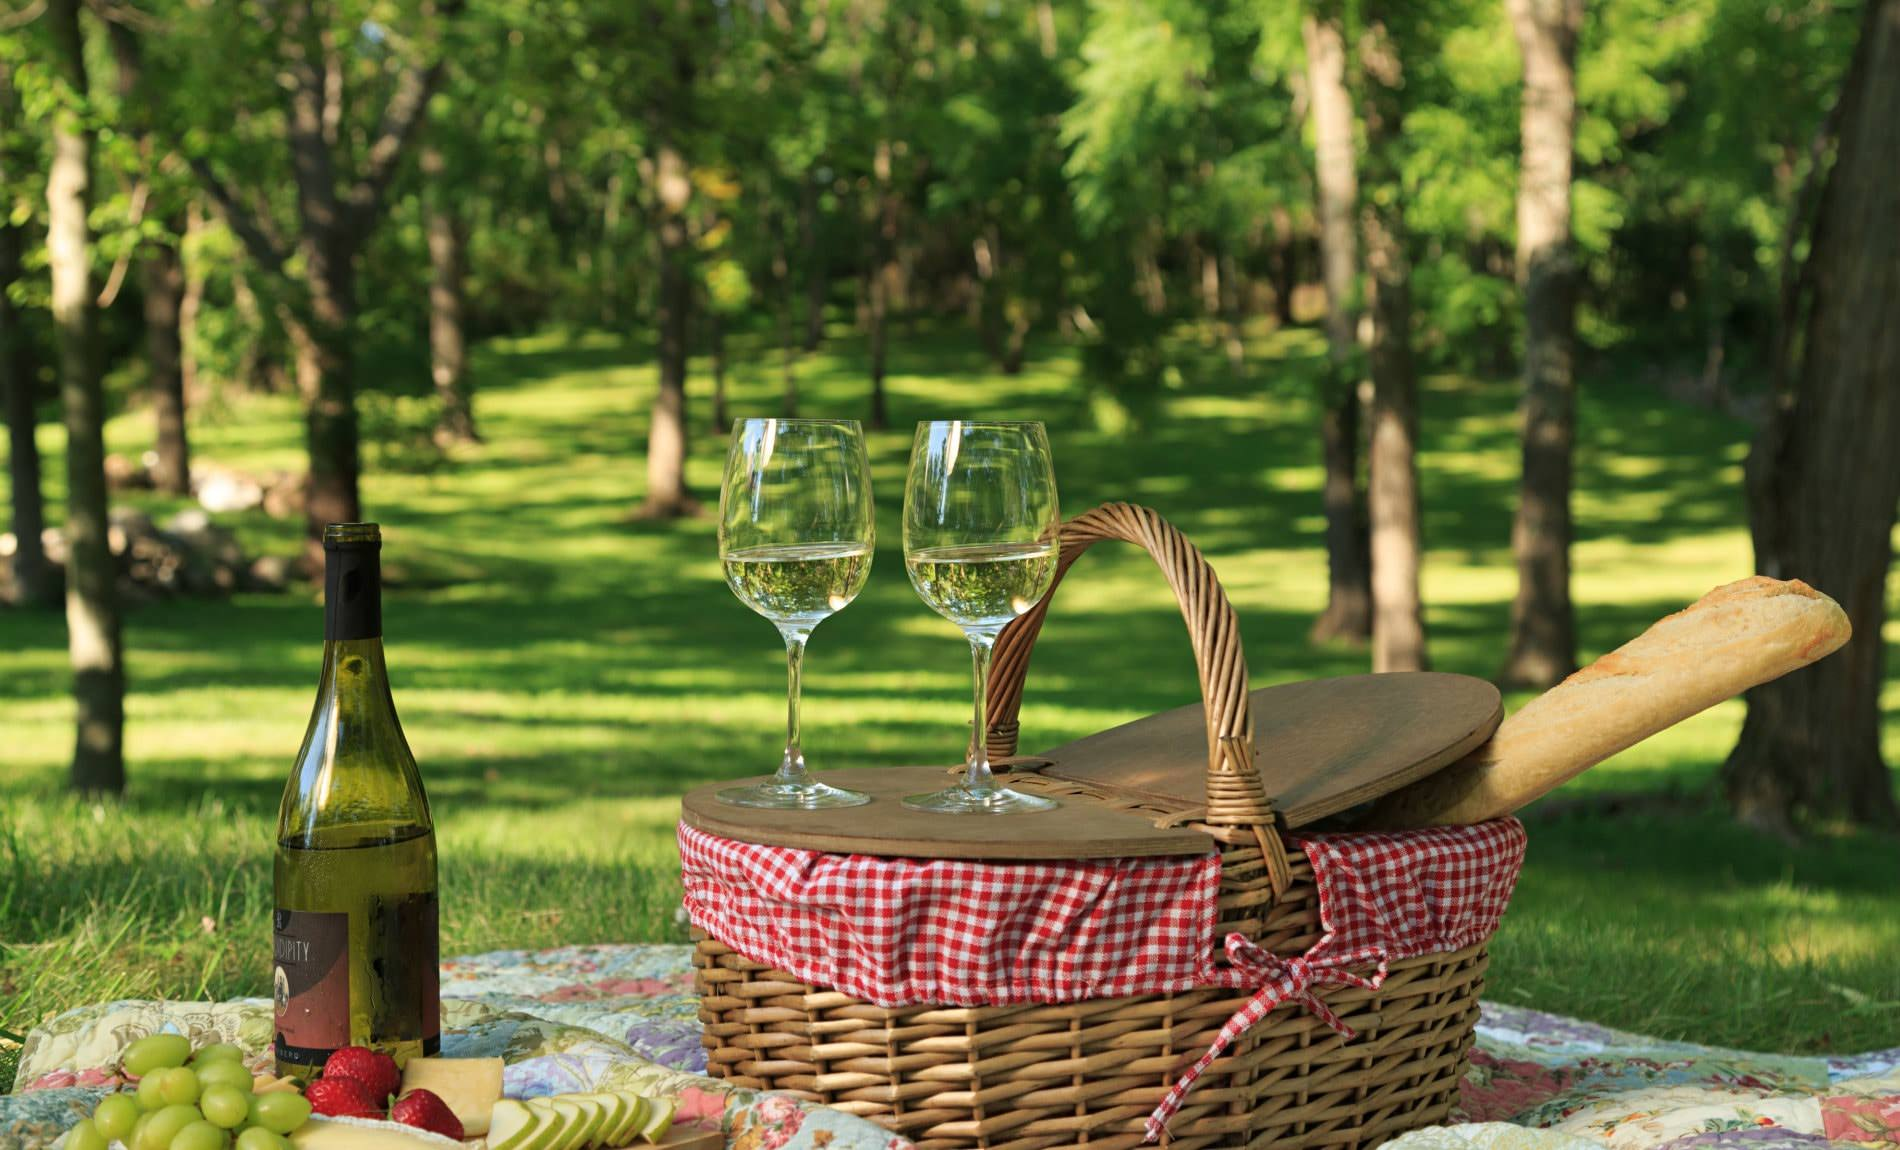 Picnic basket on a quilt with fresh fruit, cheese and wine surrounded by green grass and trees